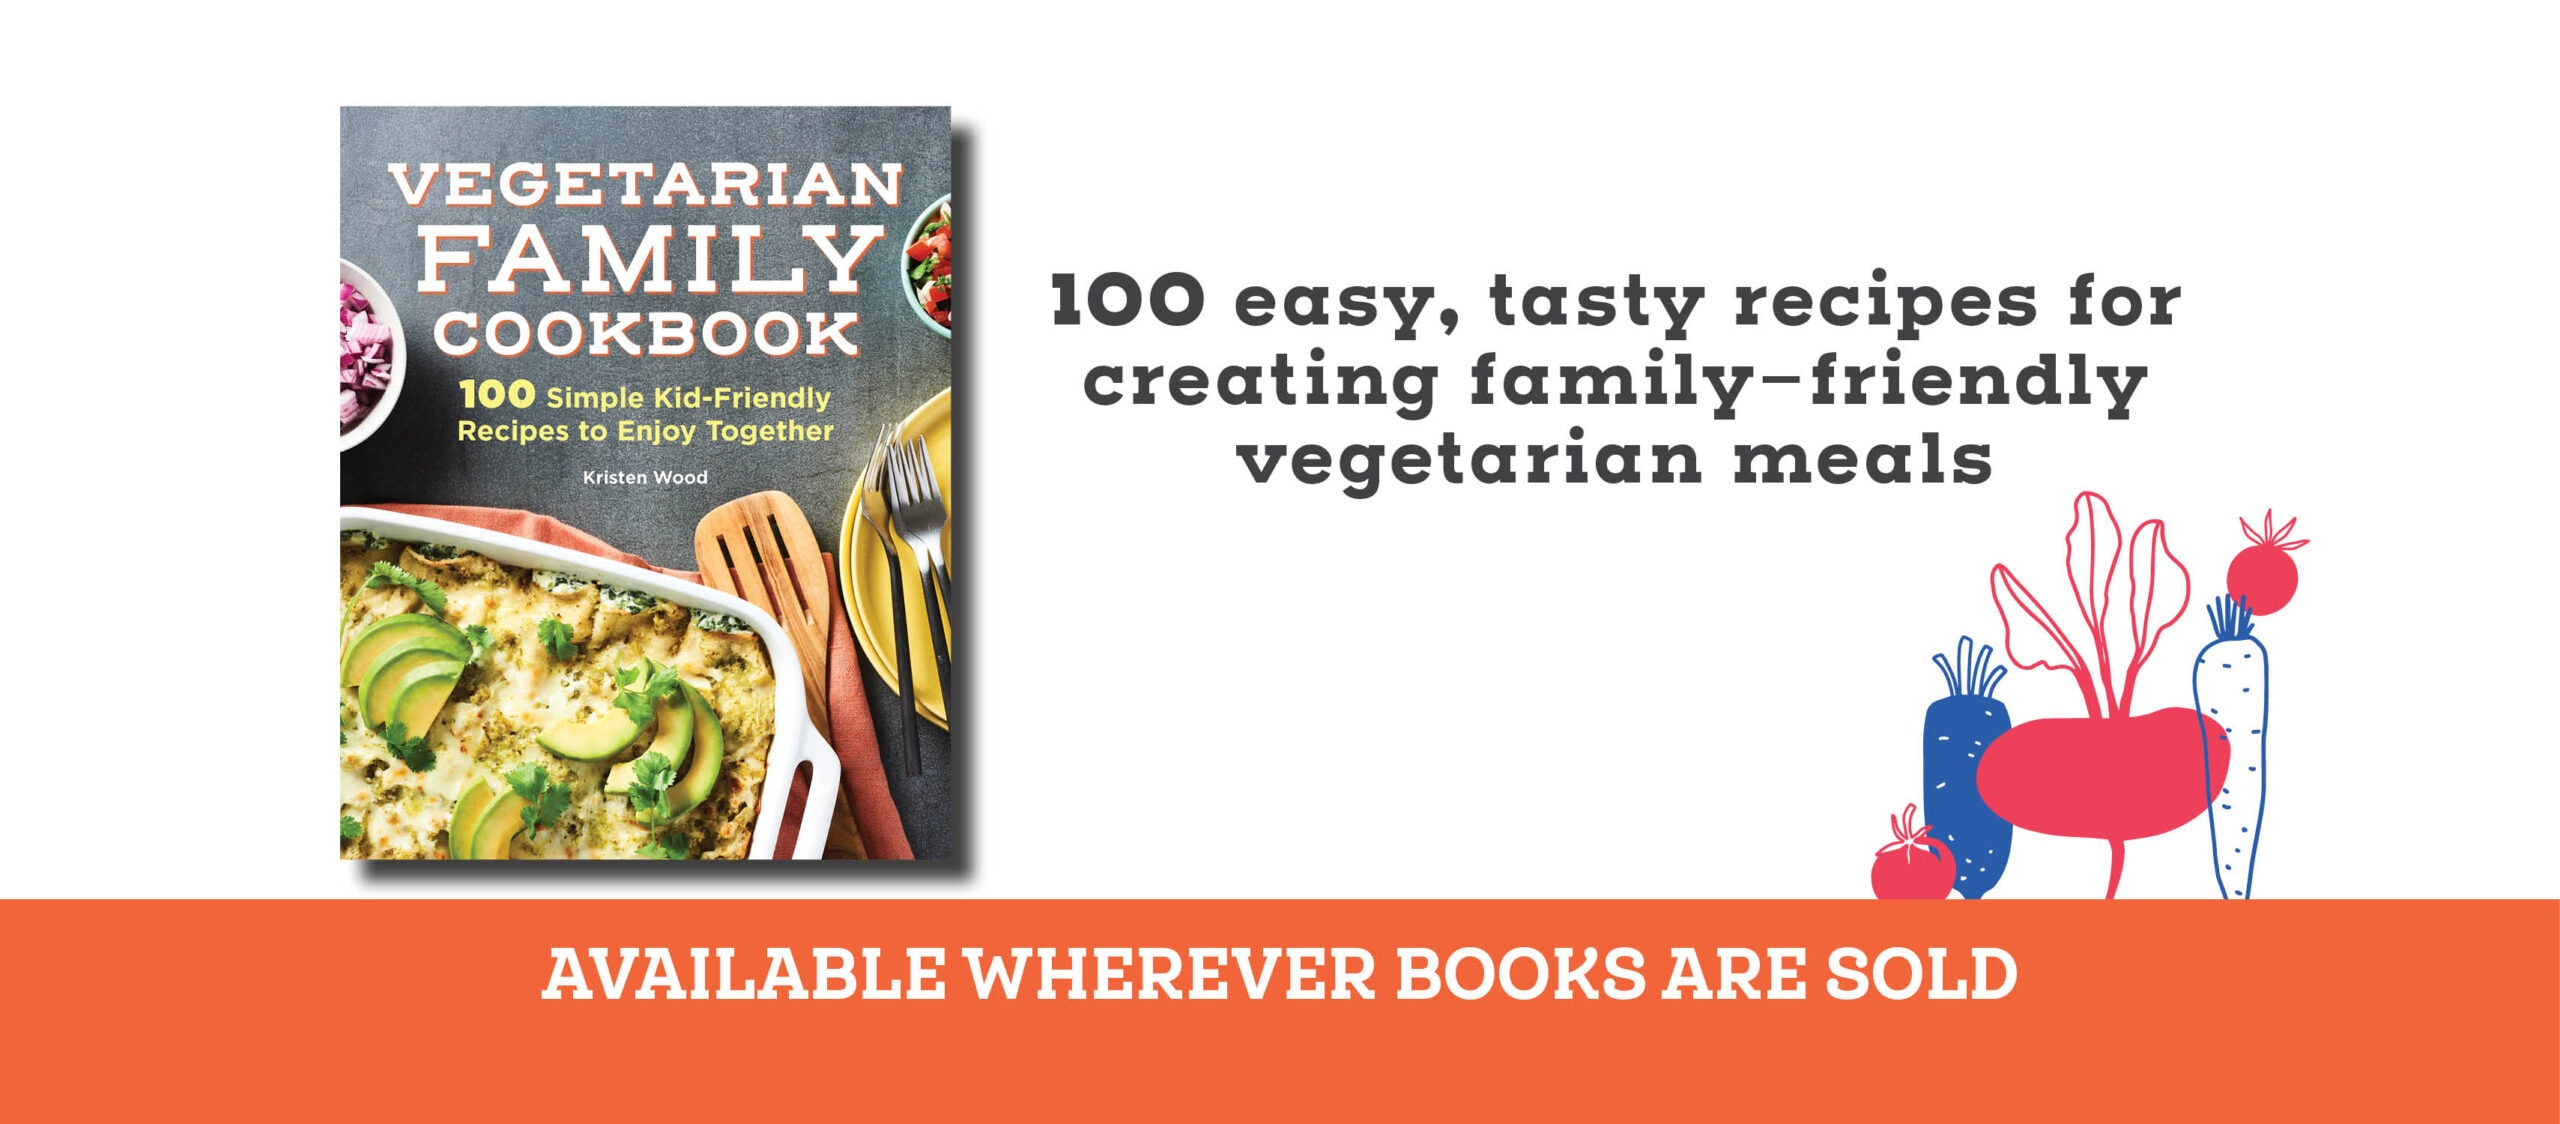 the vegetarian family cookbook banner